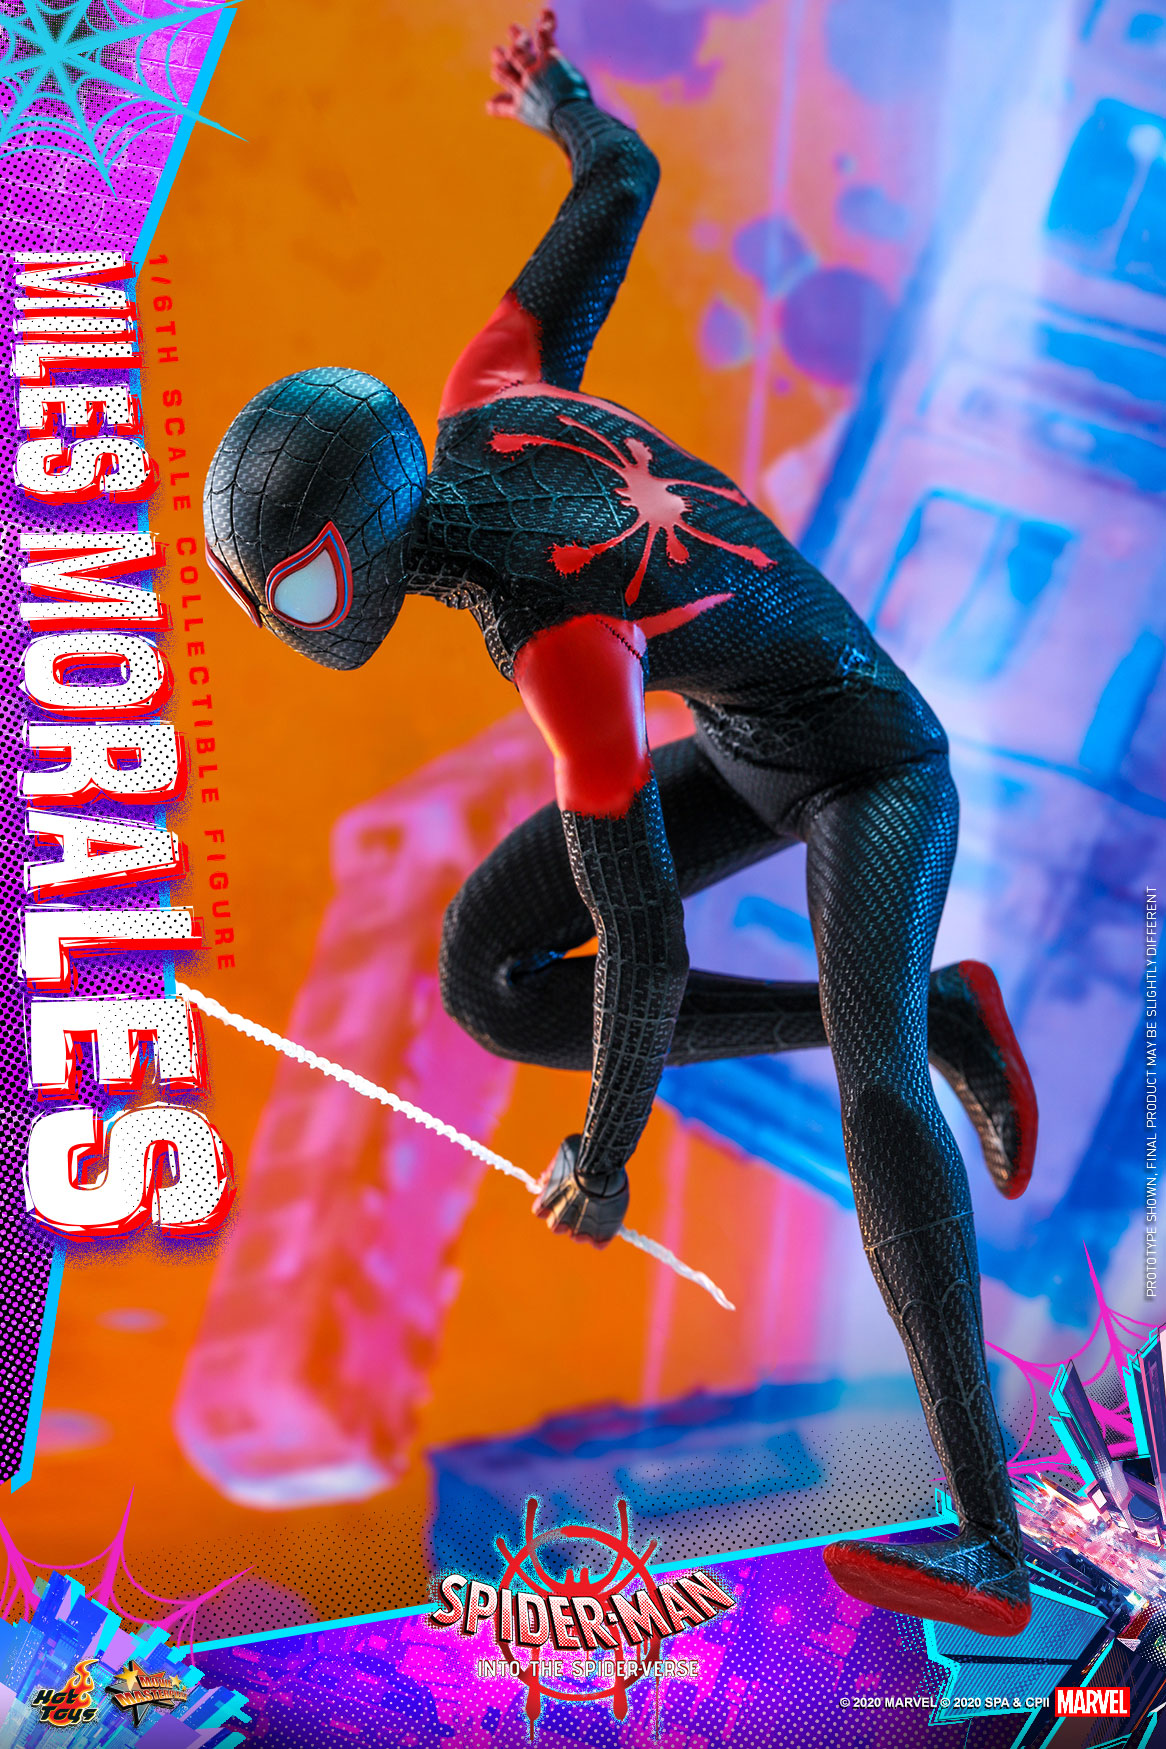 Hot-Toys---Spider-Man-into-the-Spider-Verse---Miles-Morales-collectible-figure_PR16